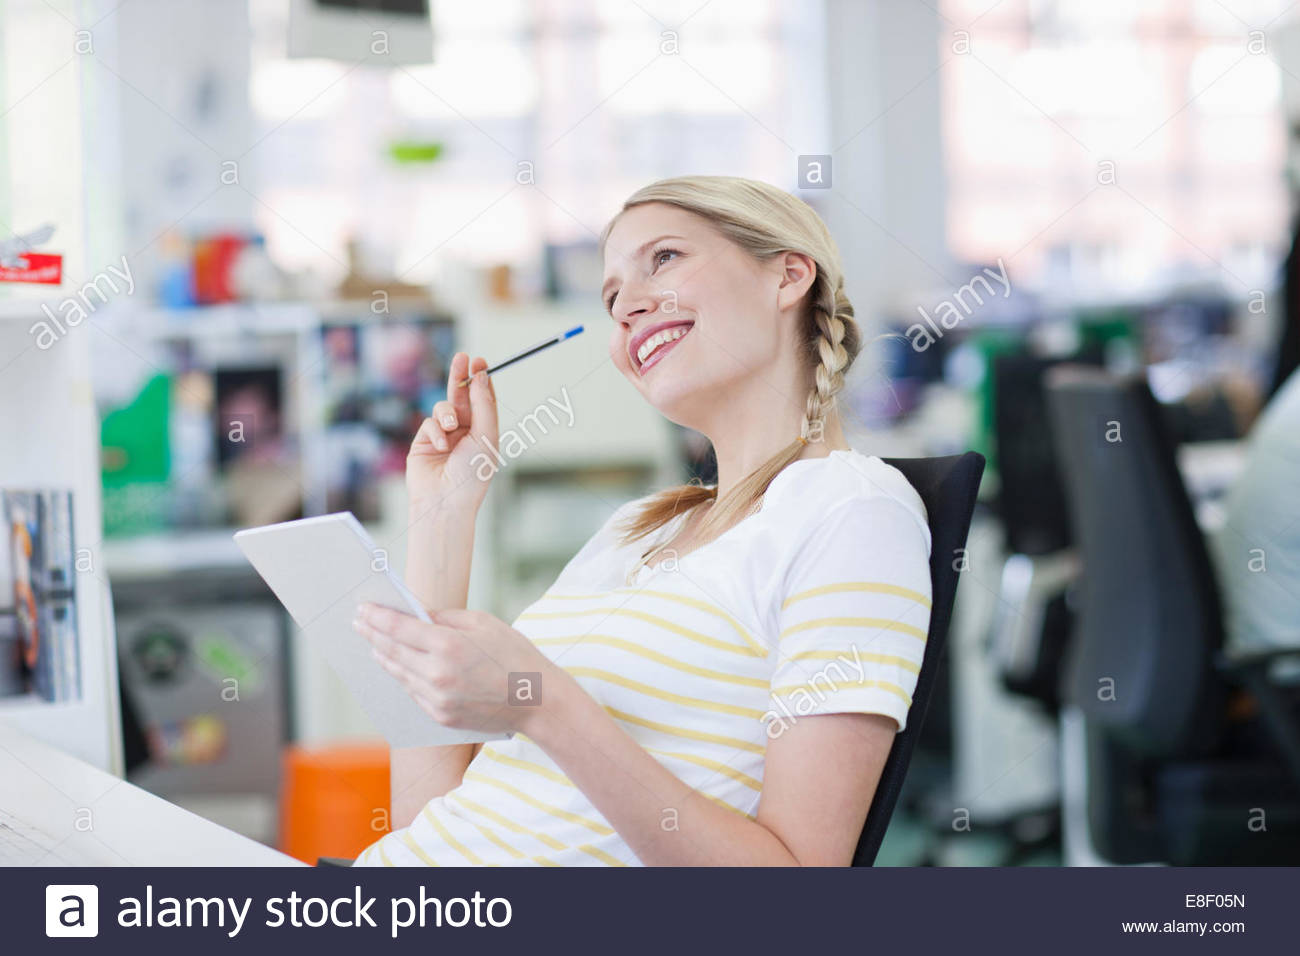 Smiling businesswoman holding notepad and looking up in office - Stock Image